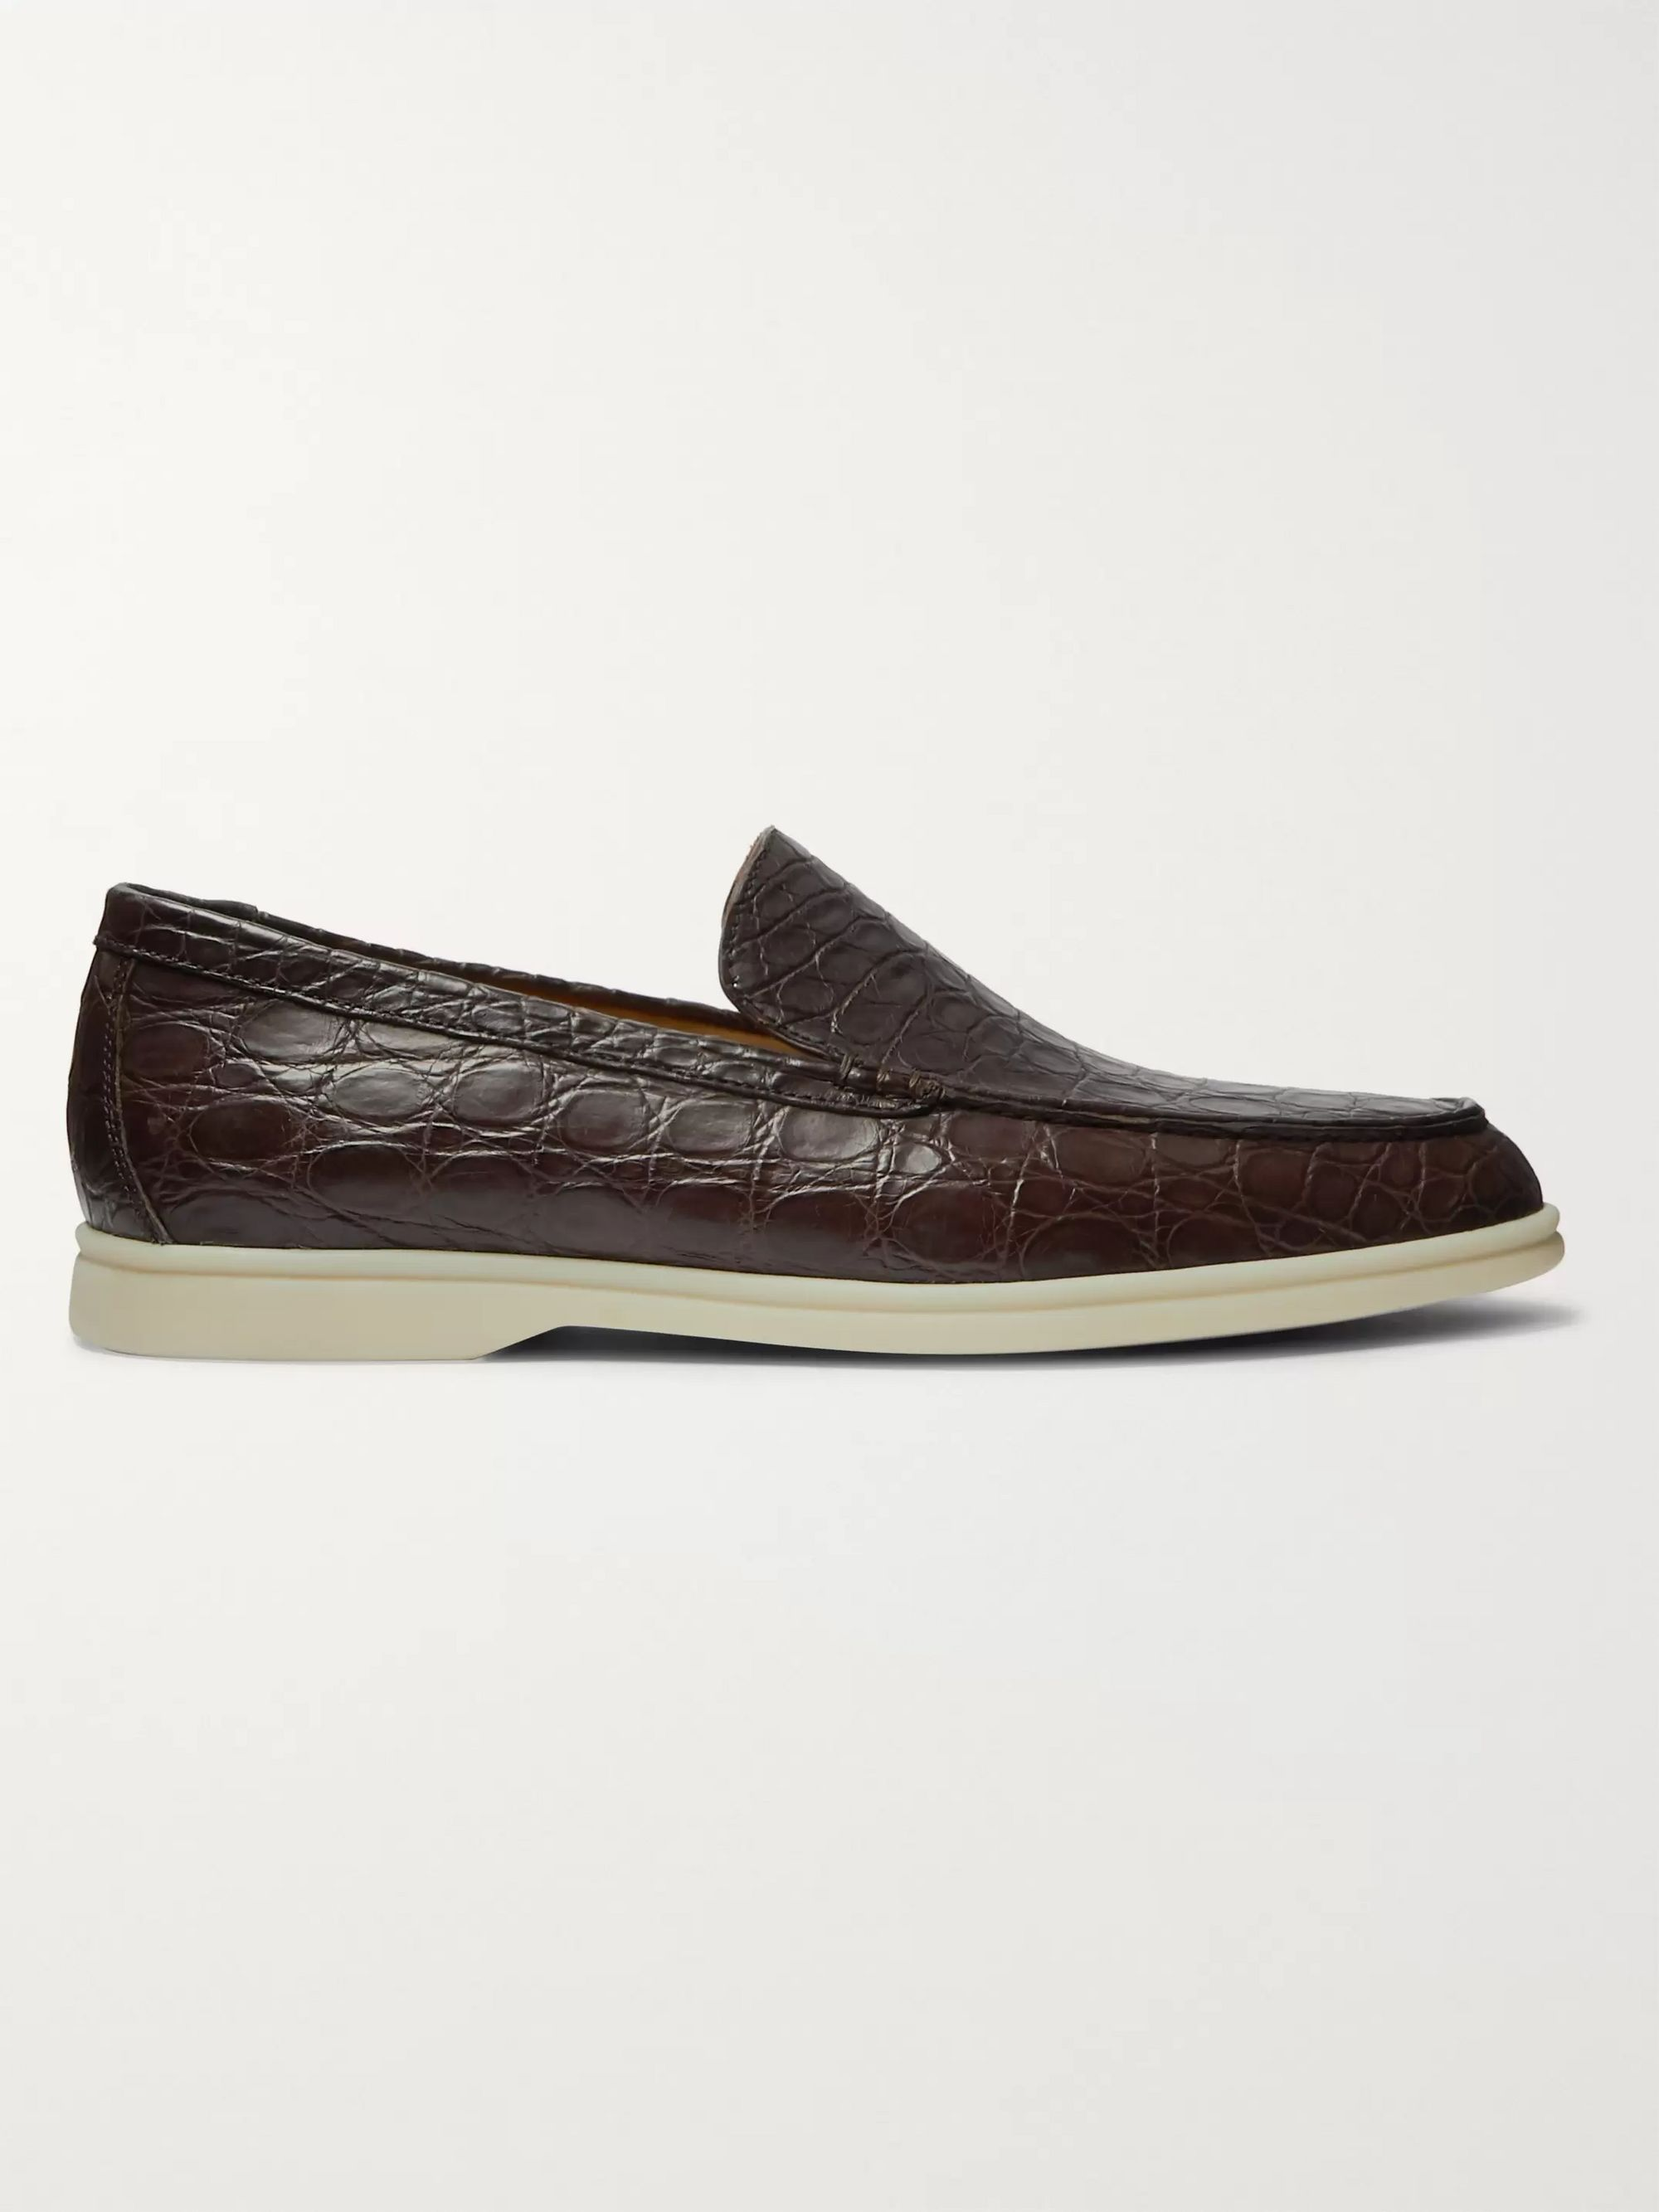 LORO PIANA Summer Walk Crocodile Loafers